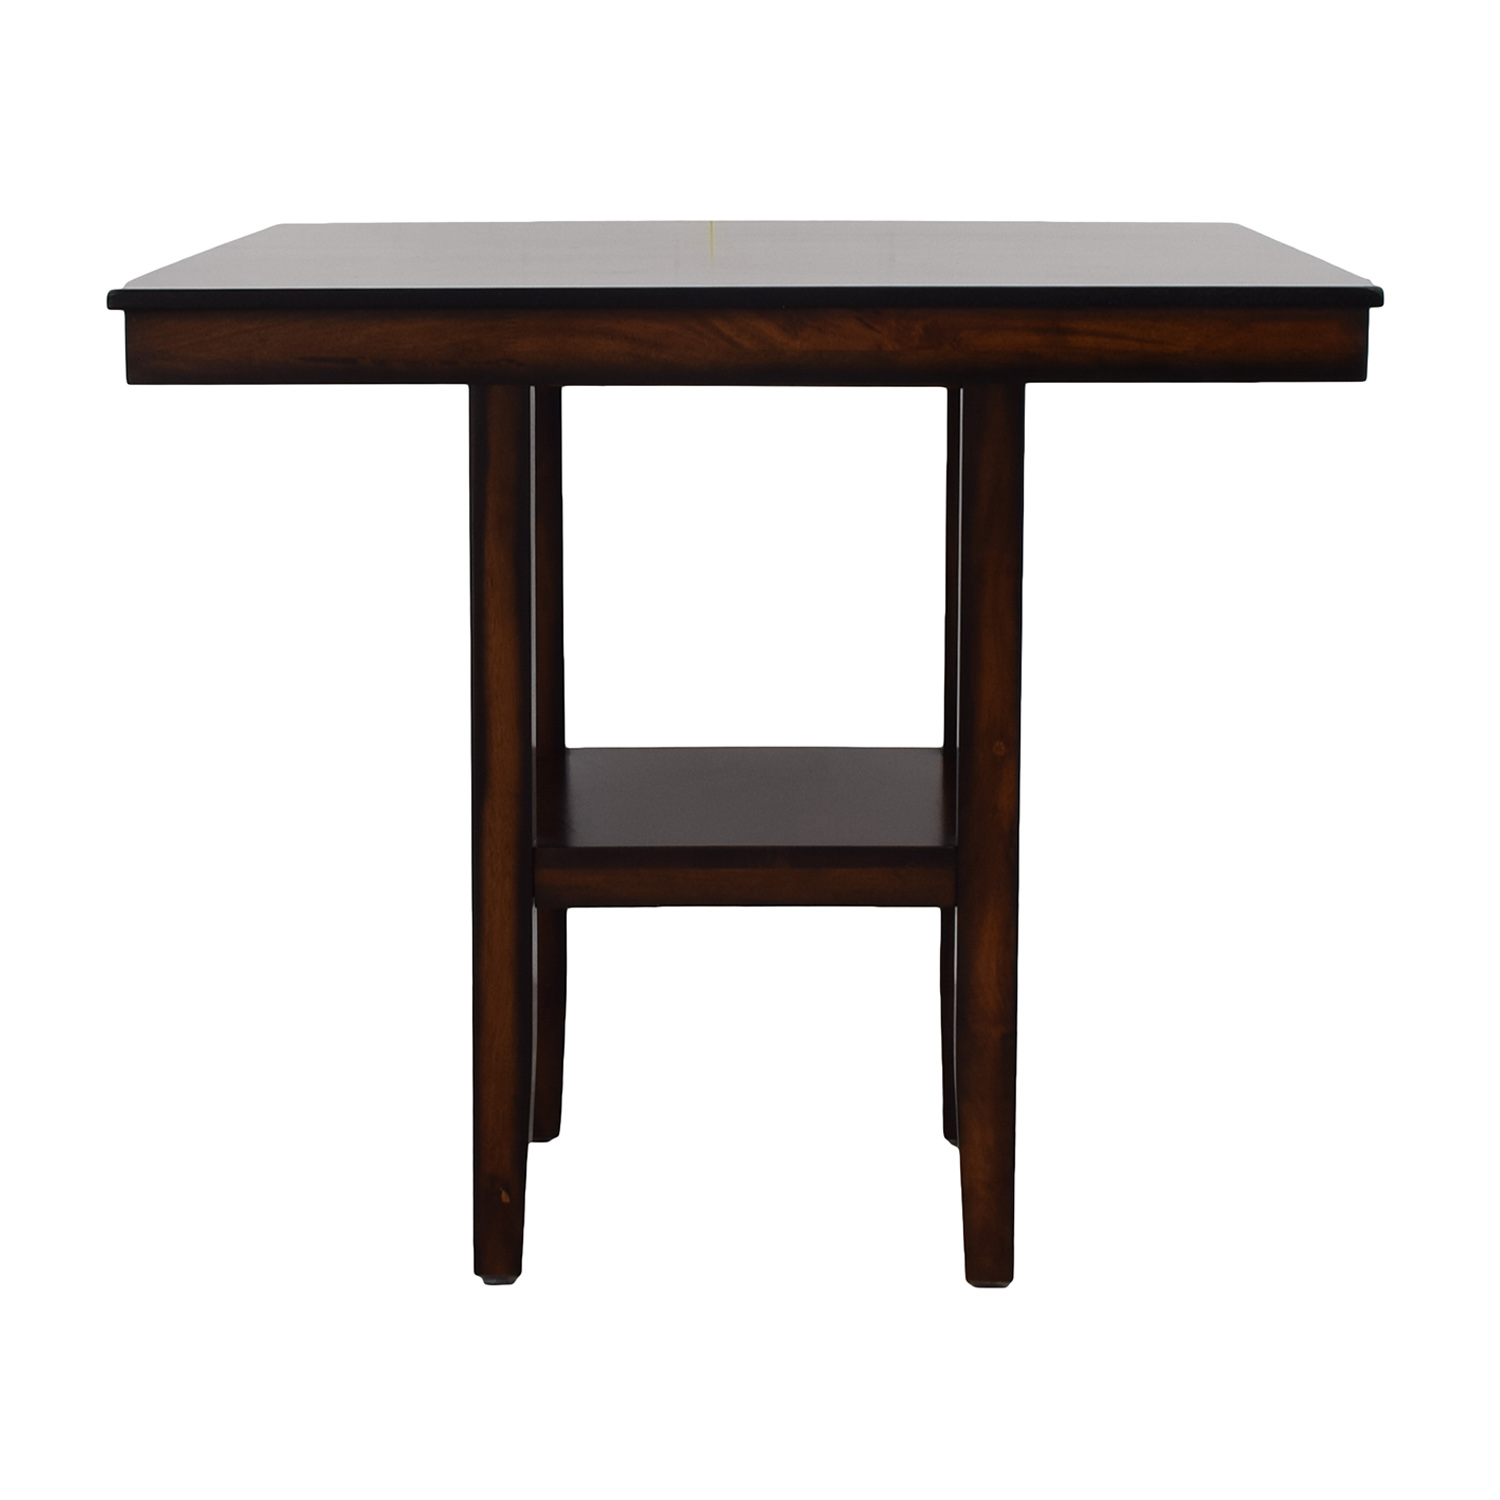 Macy's Macy's Wood Dining Table discount